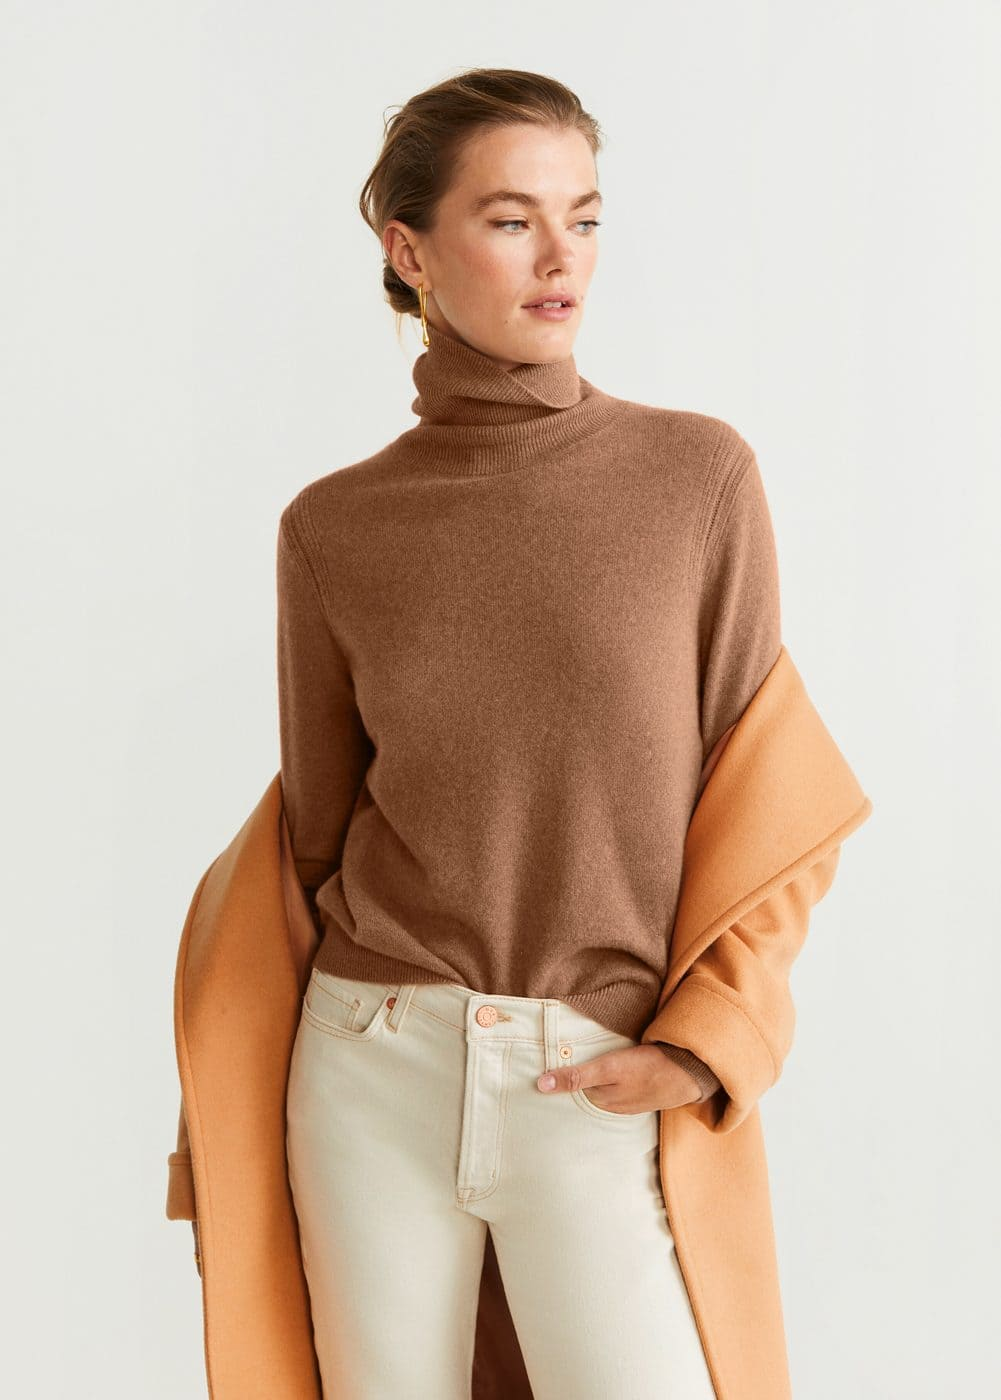 Turtleneck 100% Cashmere Sweater by Mango